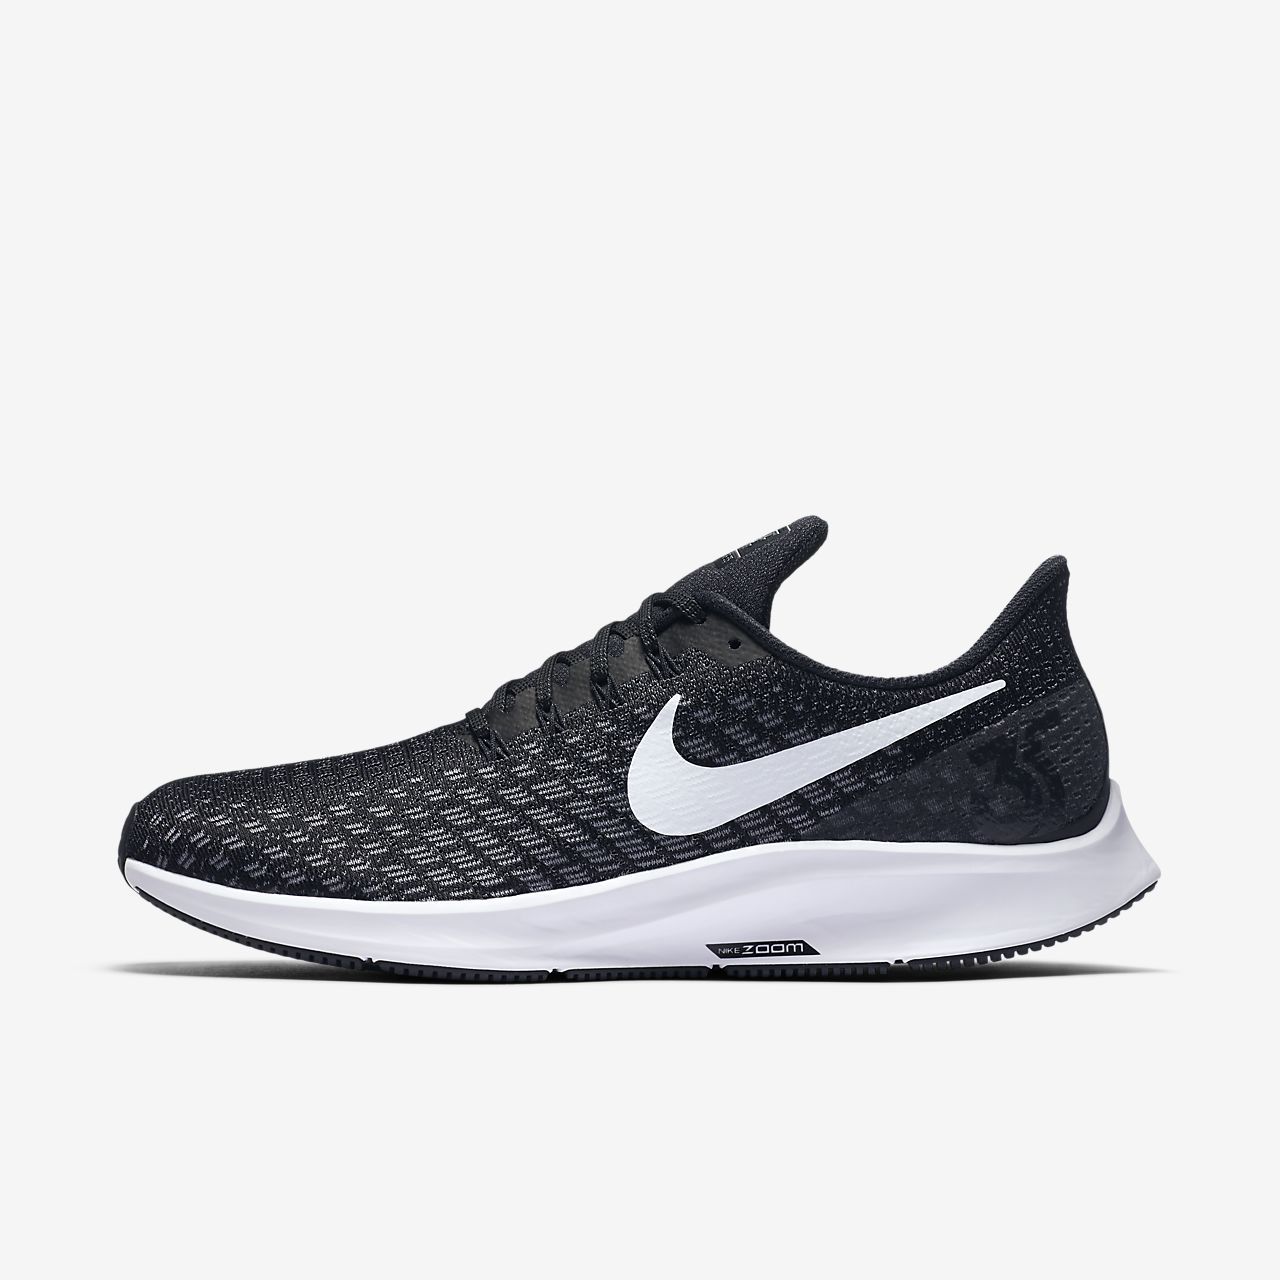 54dfa778225f Nike Air Zoom Pegasus 35 (Narrow) Men s Running Shoe. Nike.com ZA